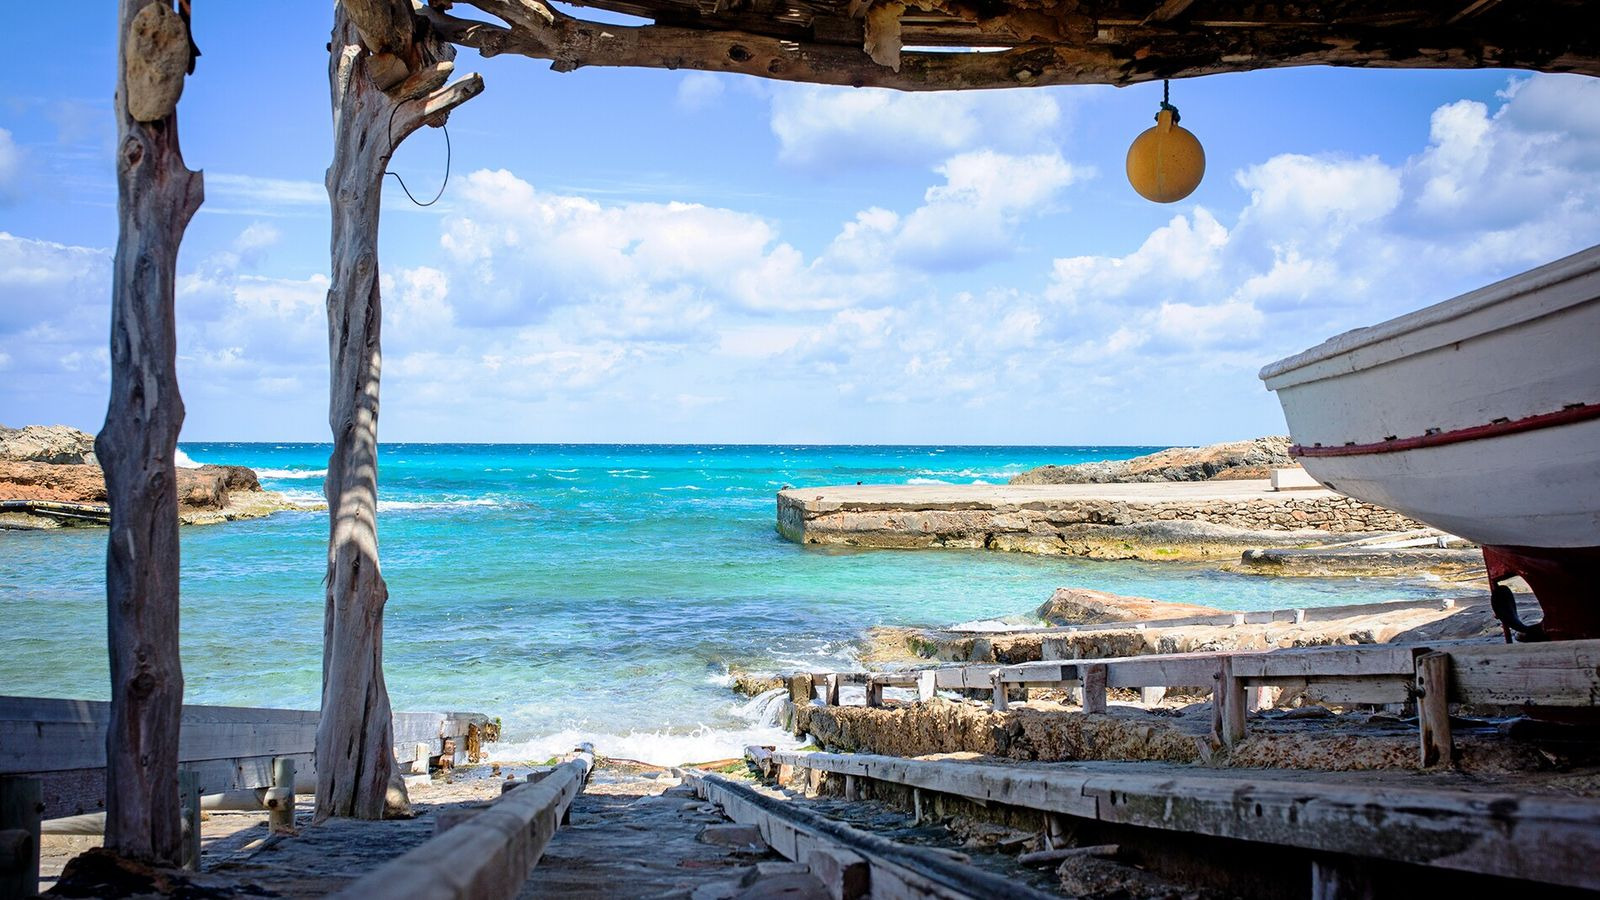 Es Caló de Sant Agustín is a traditional fishing village in Formentera, with wooden boathouses, a ...